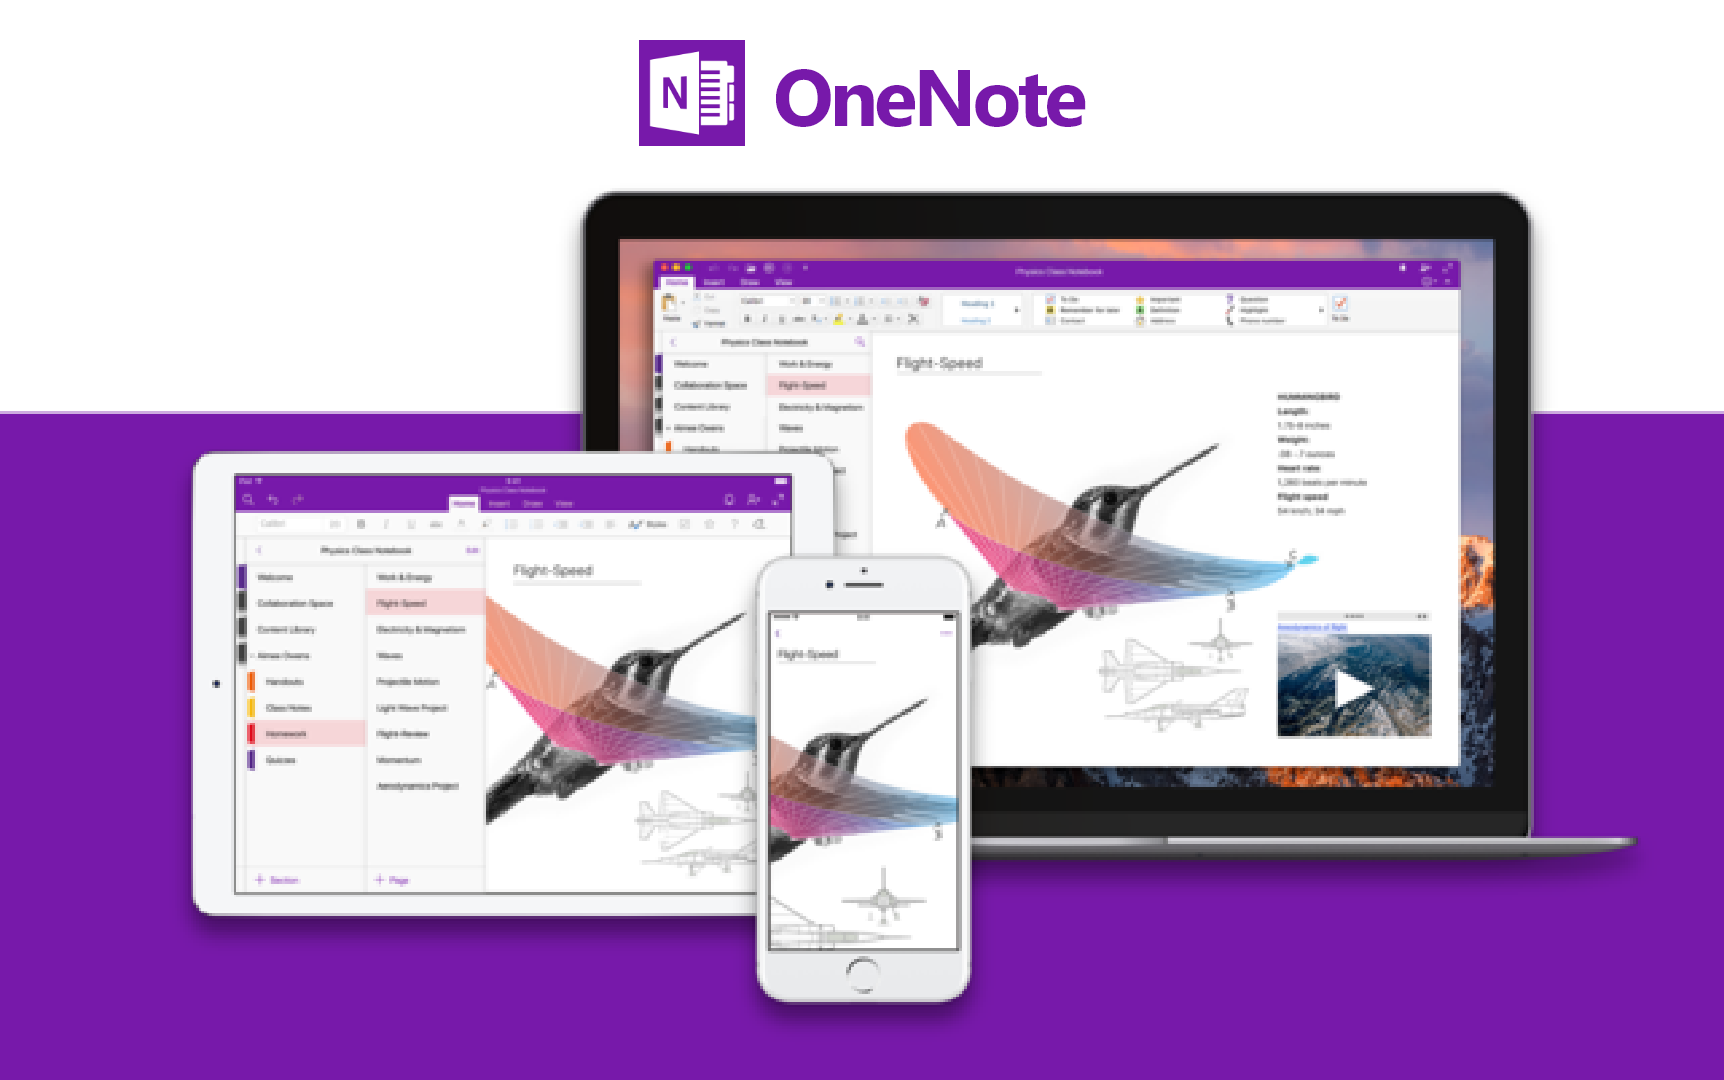 Microsoft is killing off the OneNote desktop software